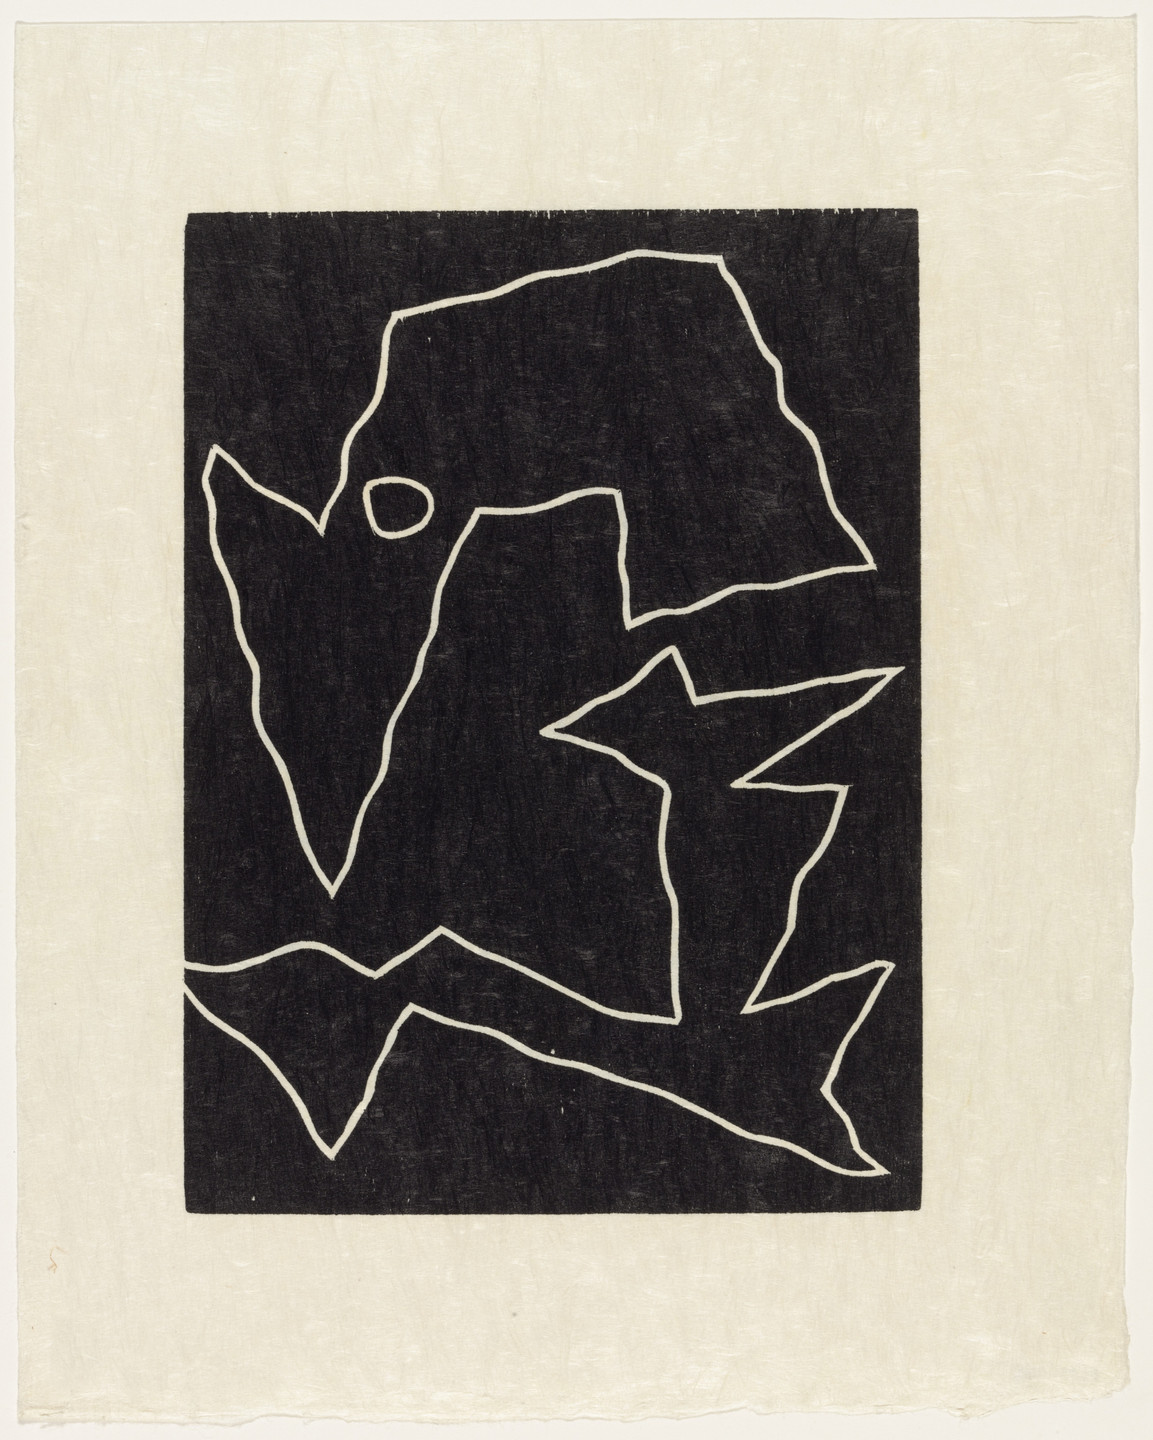 Jean (Hans) Arp. Mirage of a Voice (plate, supplementary suite) from Dreams and Projects. 1951–52, published 1952